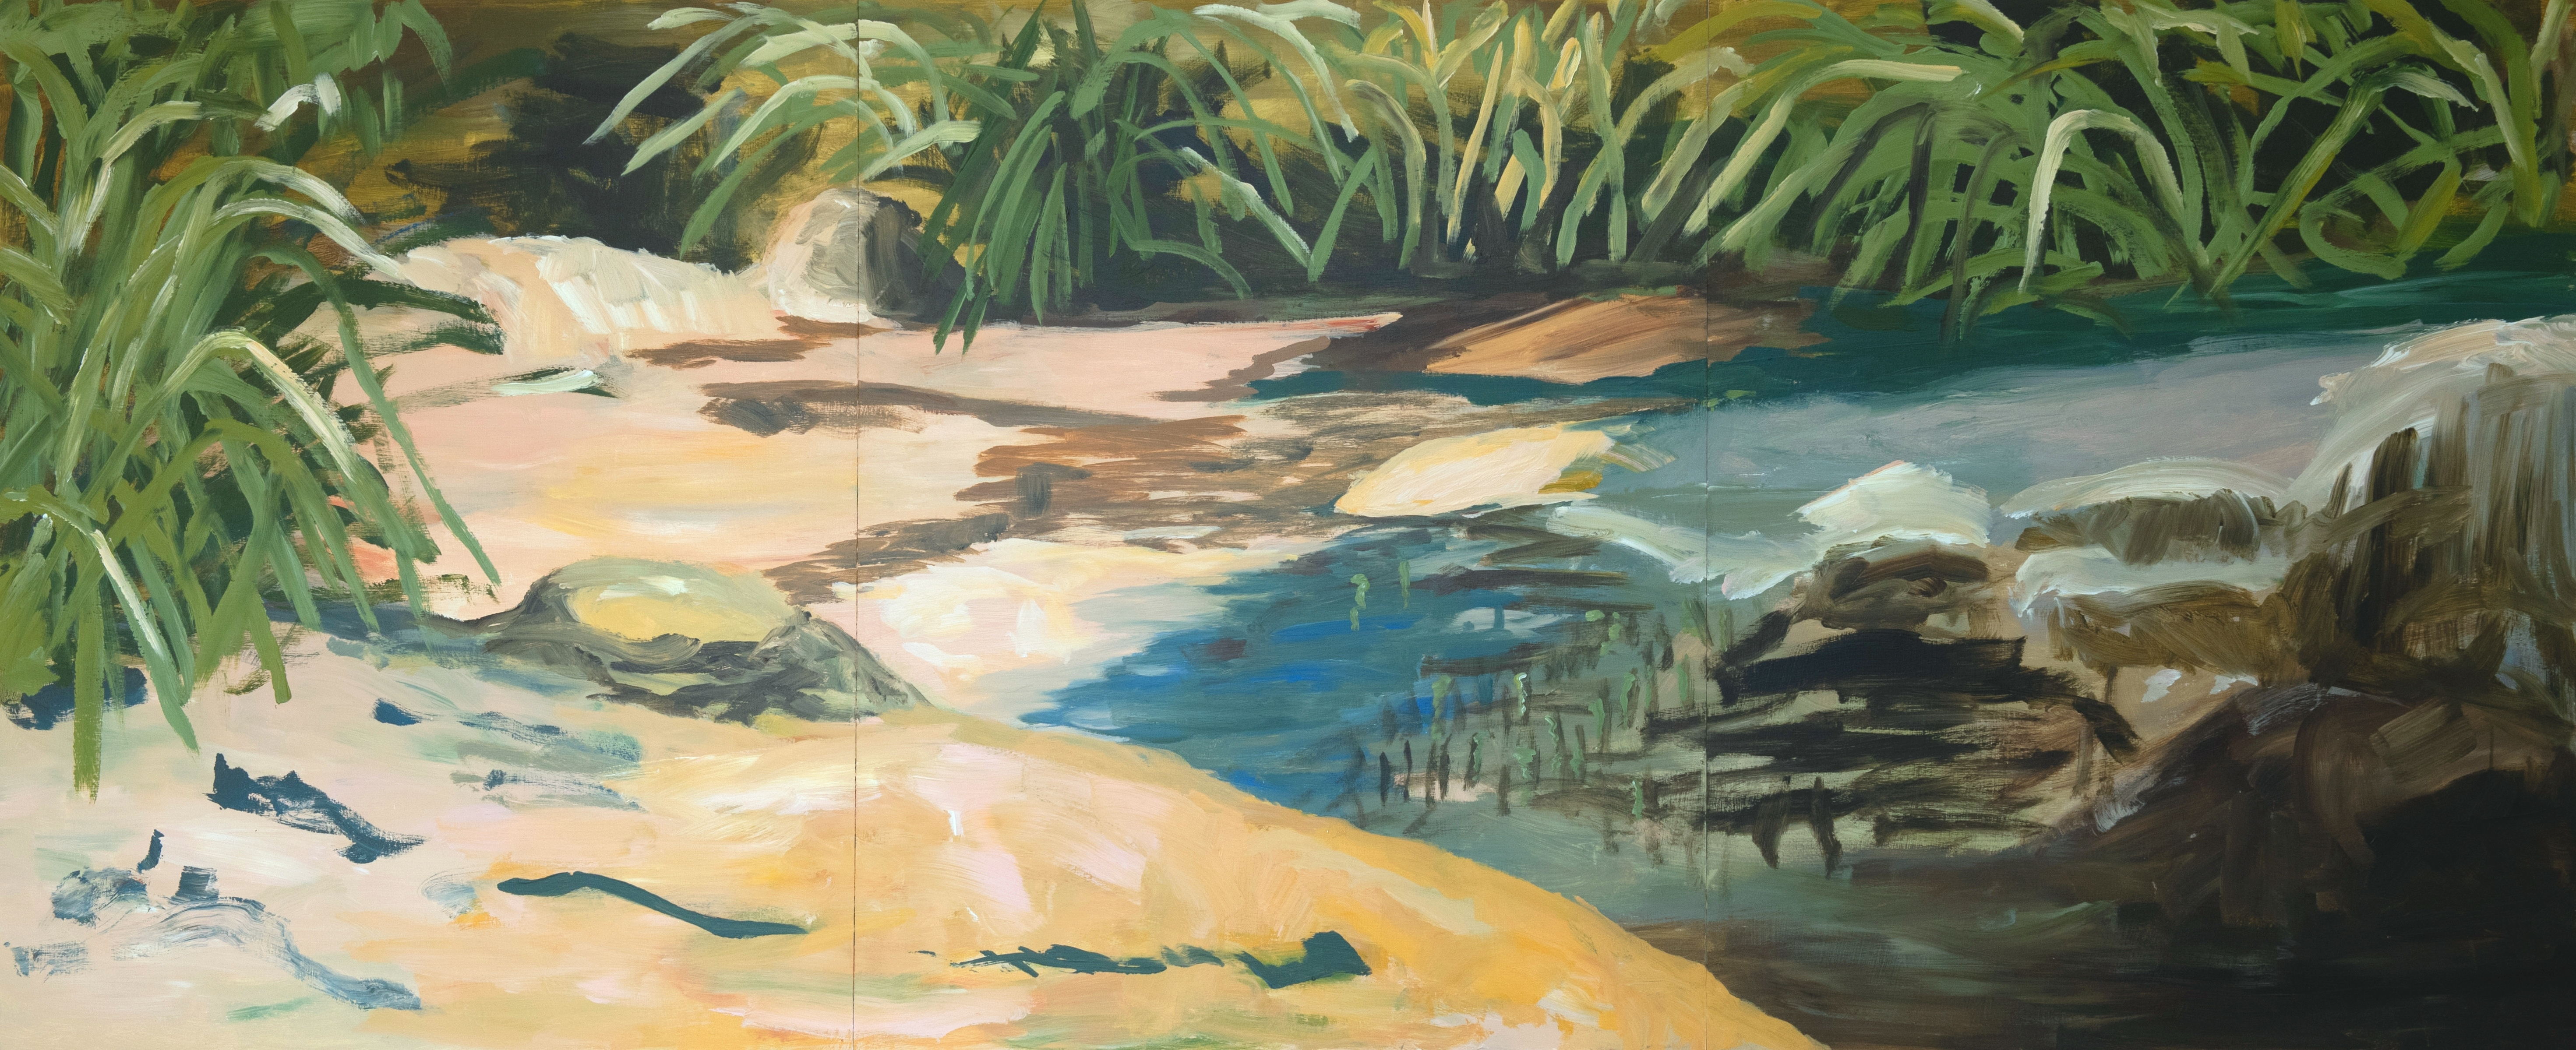 Land of Fools and Lovers, solo Jessica Skowroneck